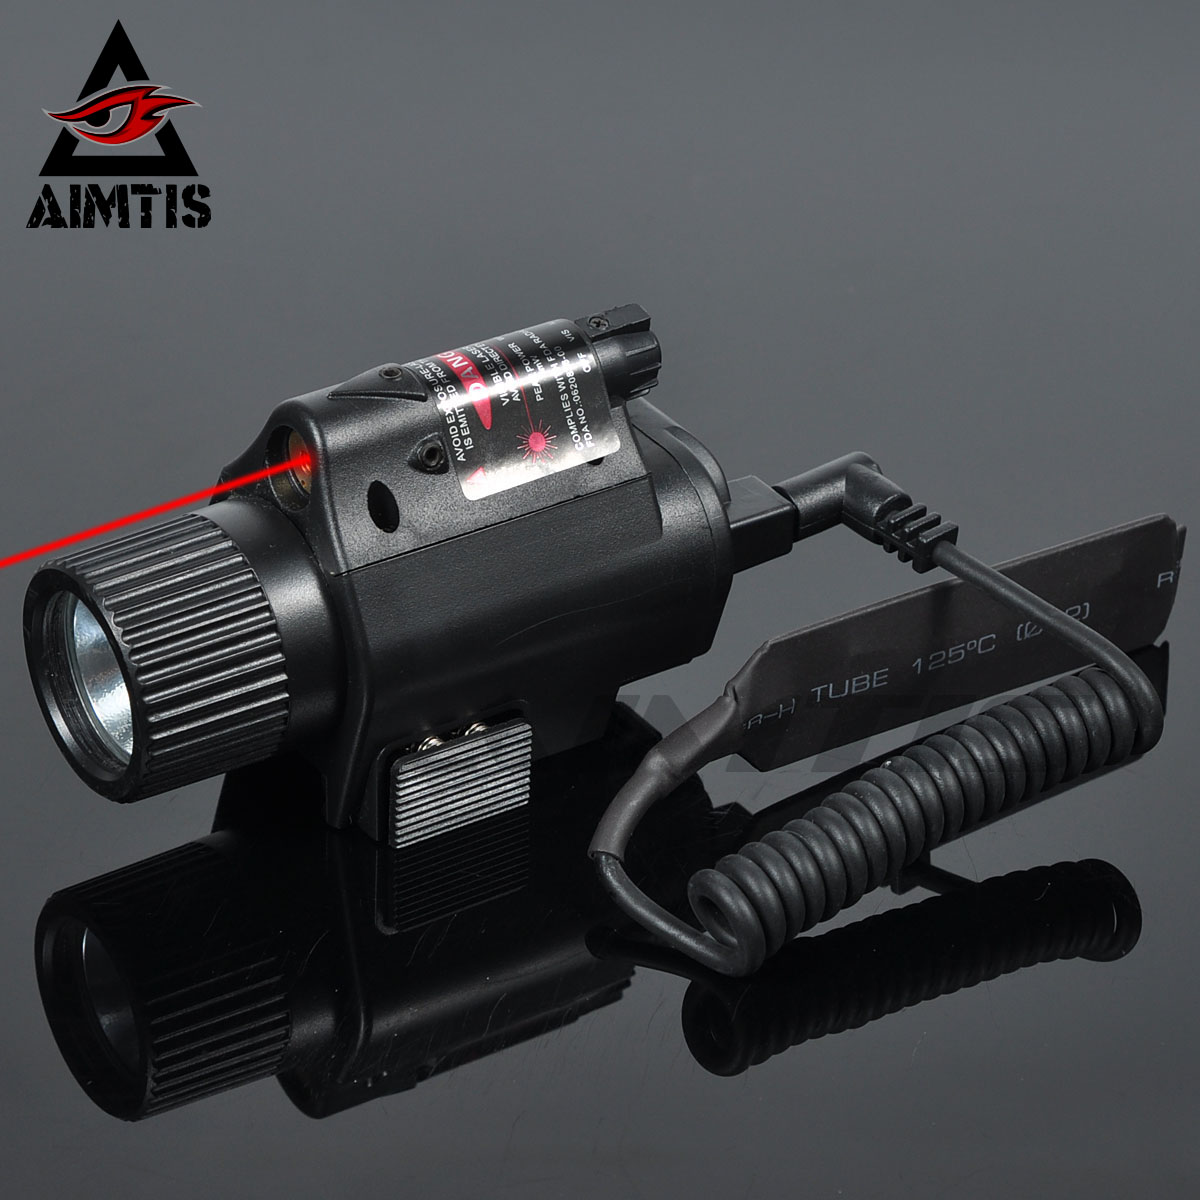 AIMTIS Mini Glock Pistol Gun Light Hunting Camping Gun Lighting Equipment Flashlight Tactical Sight Red Laser LED Flashlight